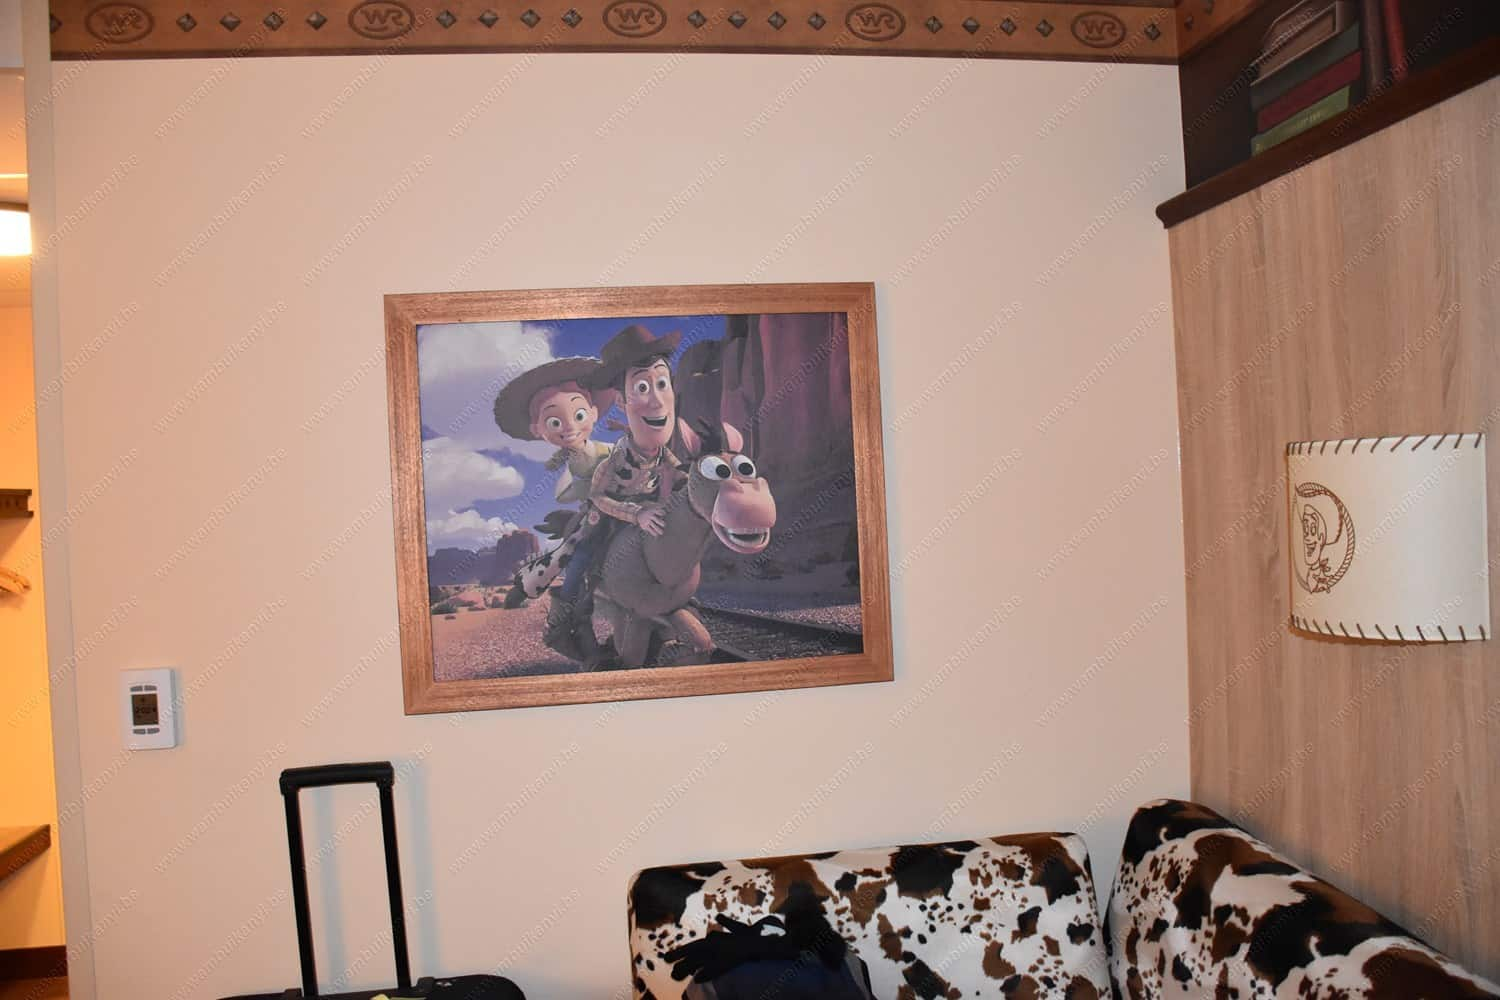 Disney's Hotel Cheyenne In Paris Experience